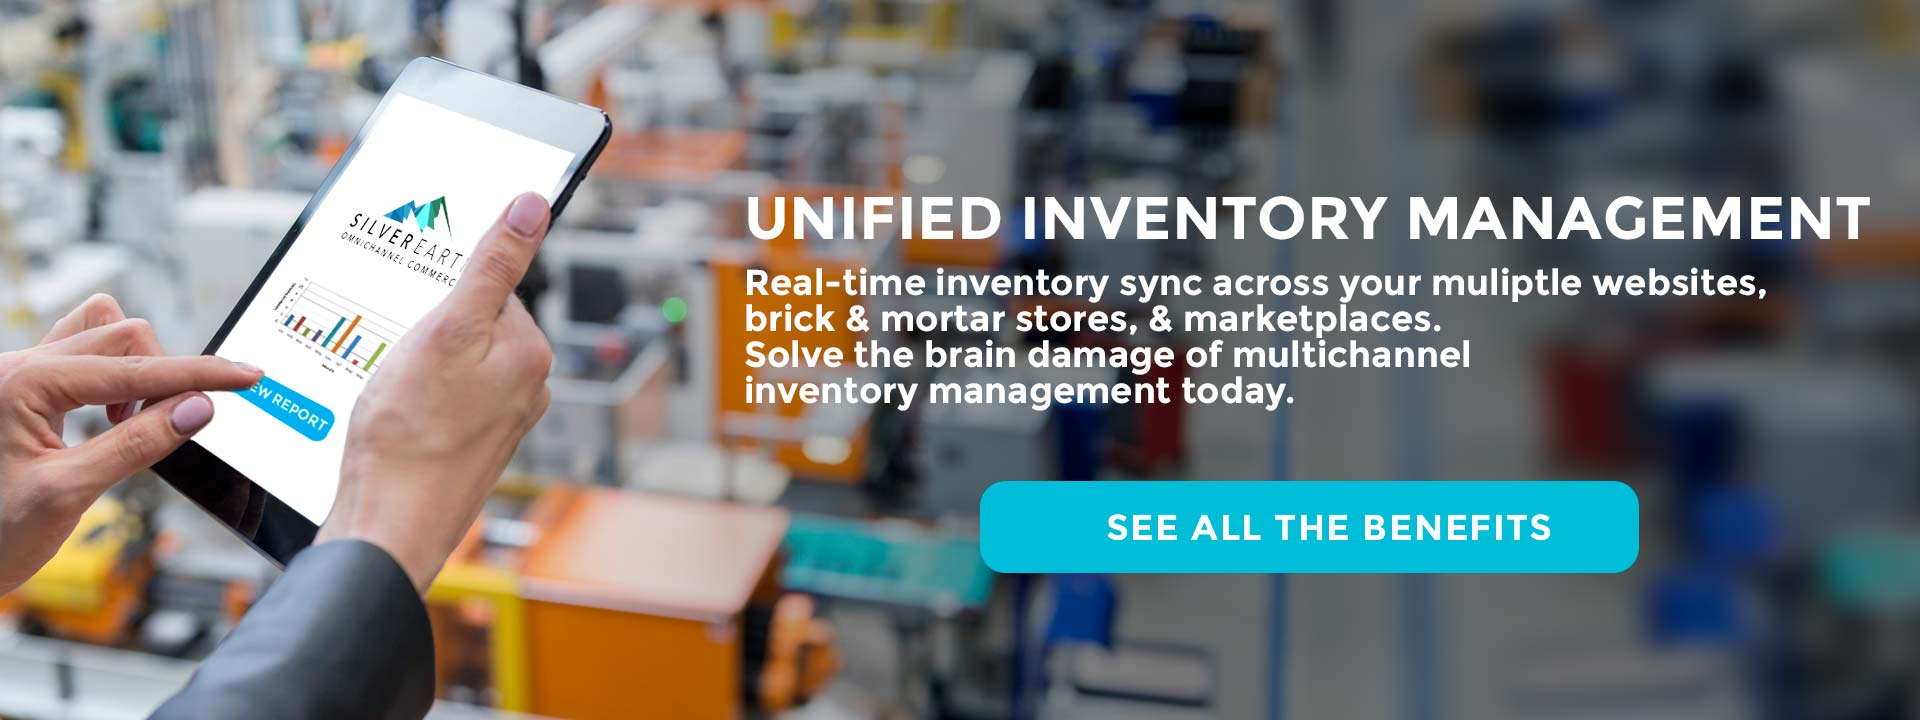 Unified Inventory Management with Omni Channel Commerce from Silver Earth